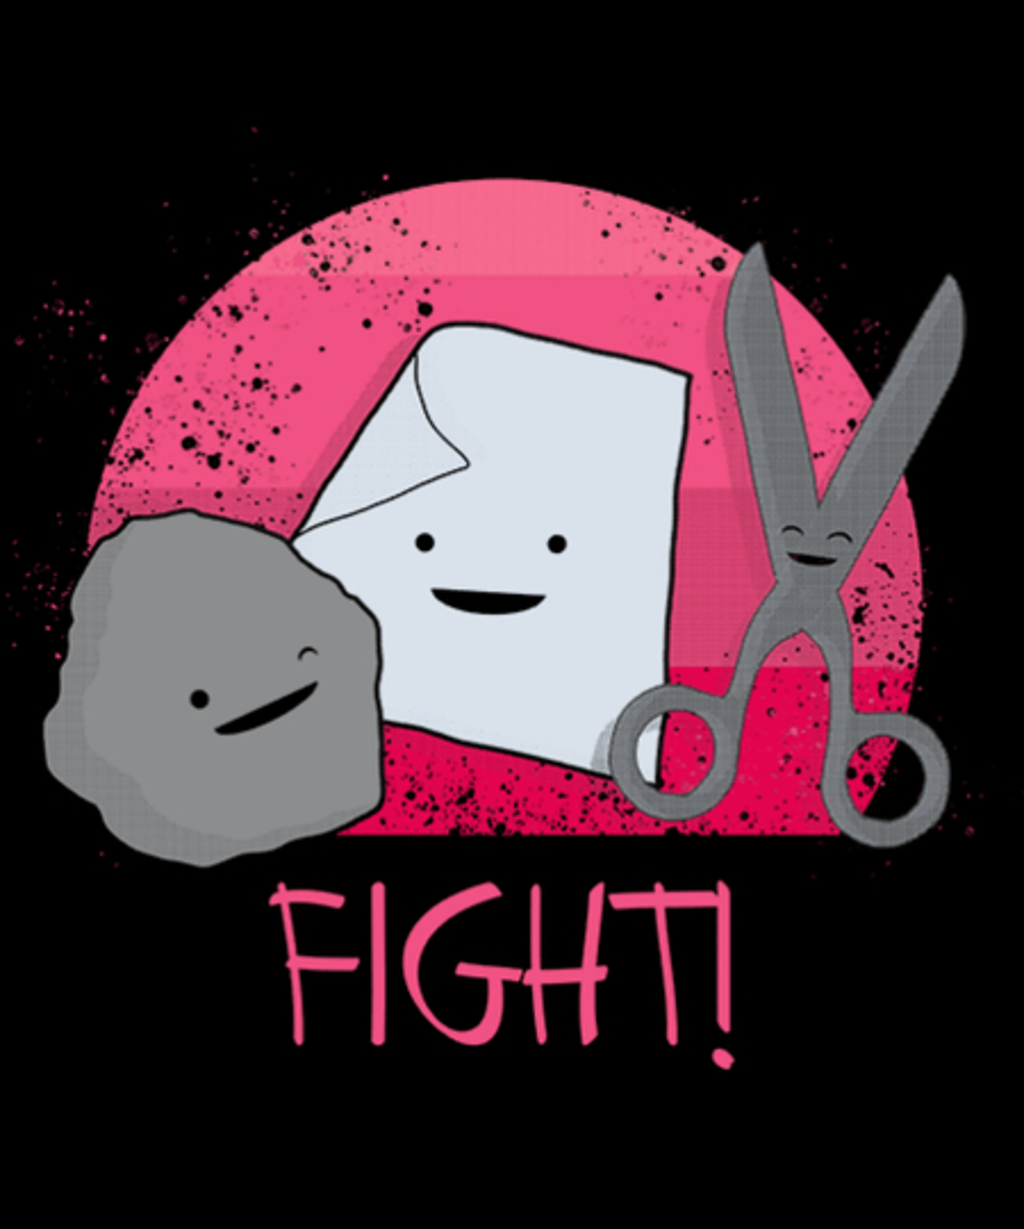 Qwertee: The Original Fight Club